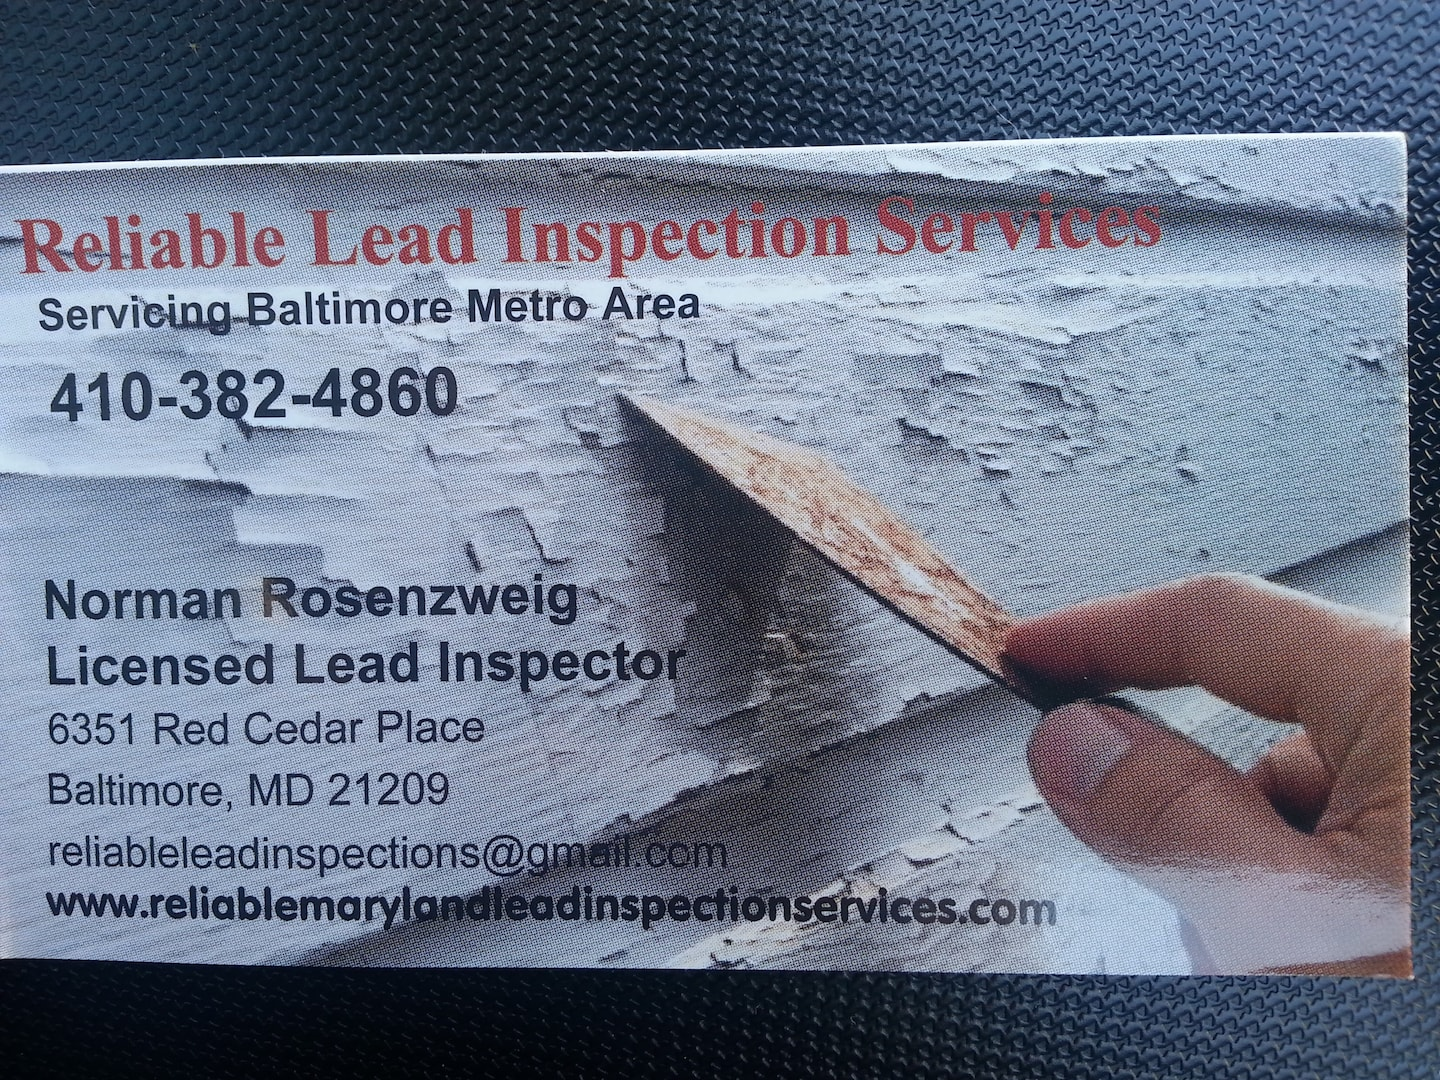 Reliable Lead Inspection Services